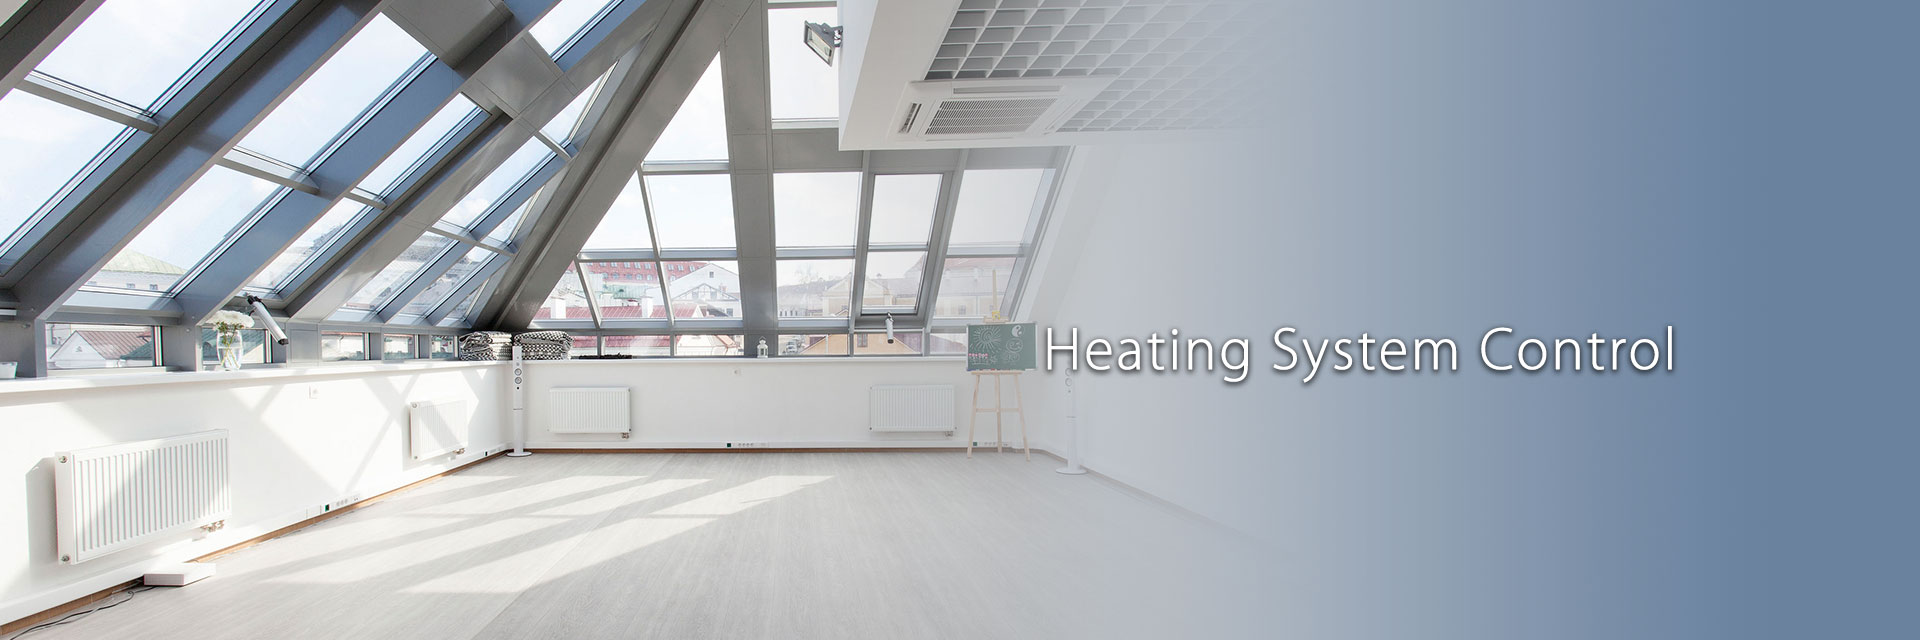 Heating System Control